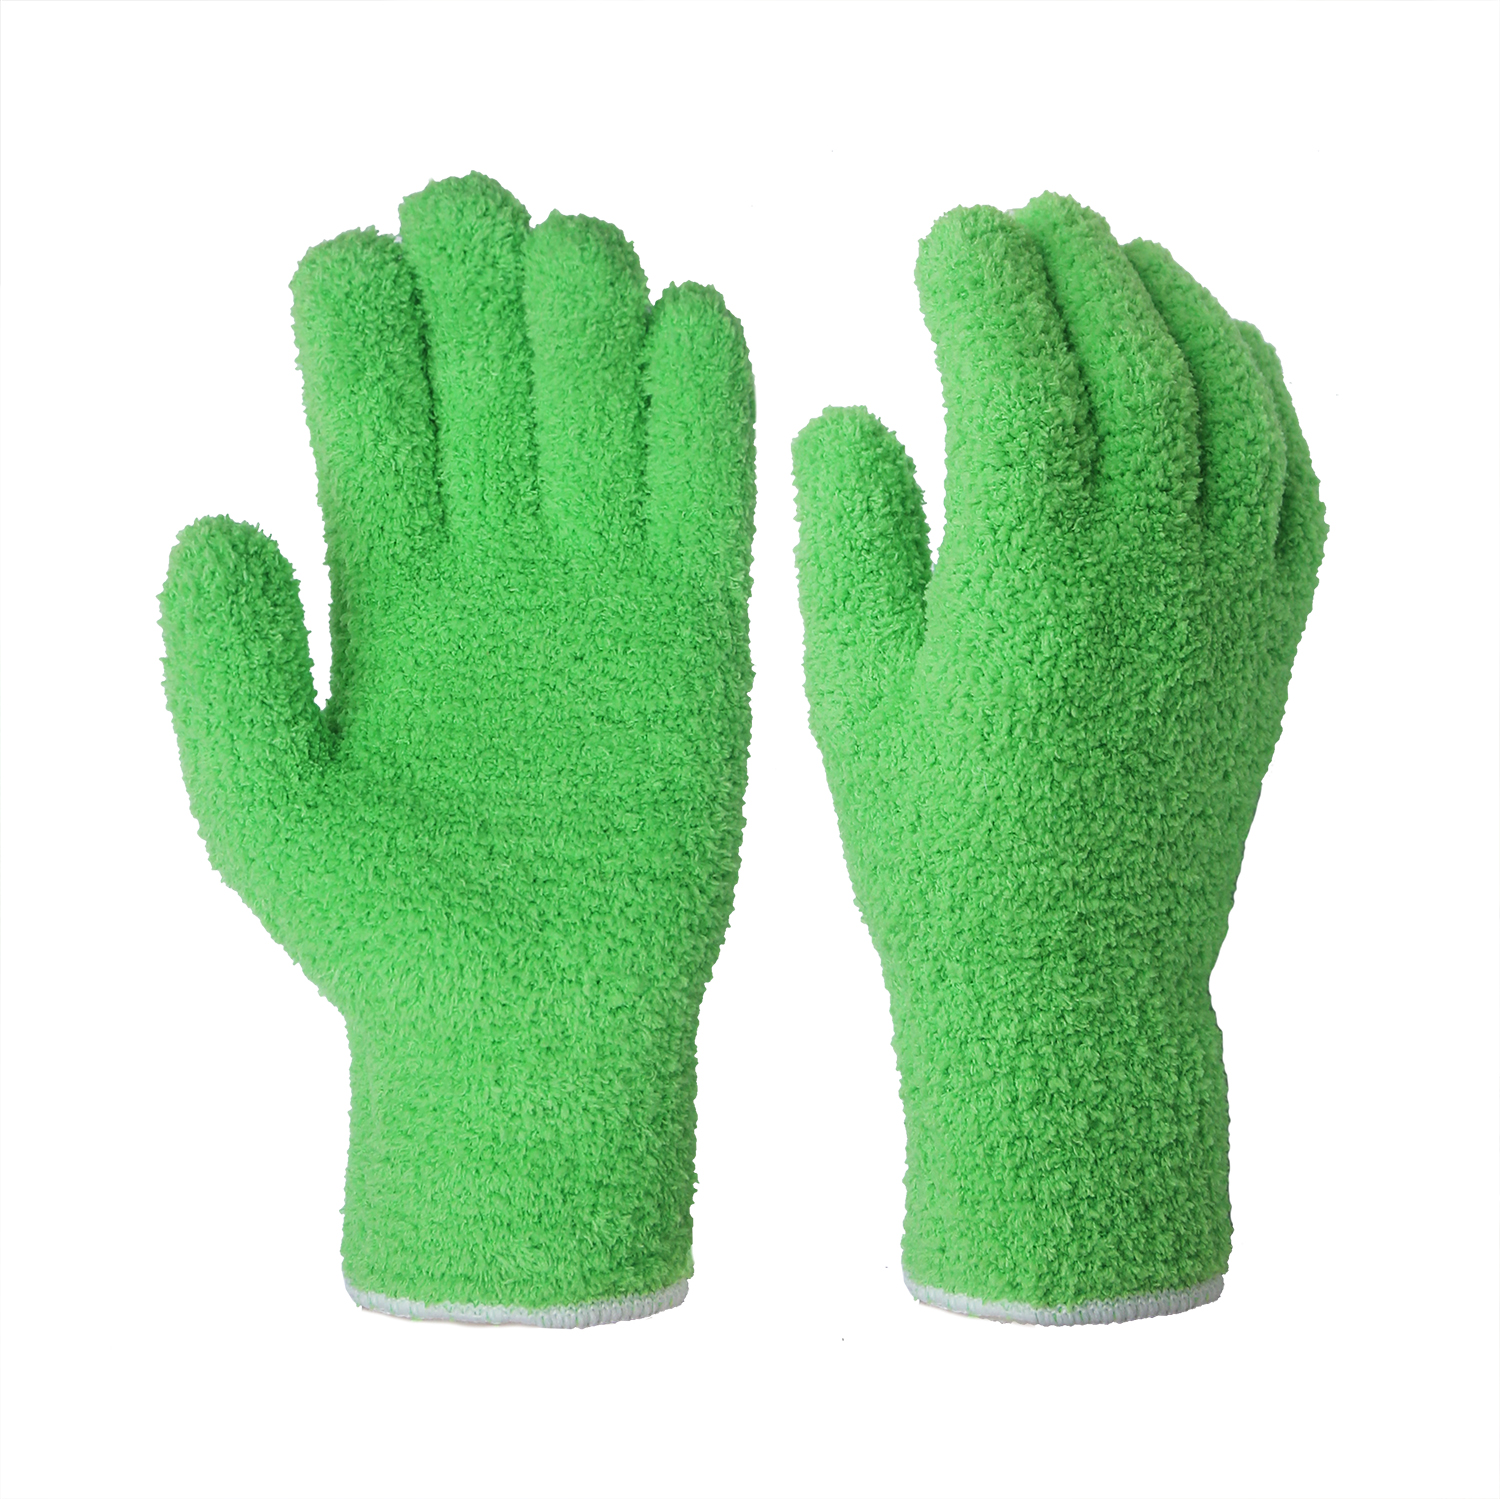 Microfiber Auto Dusting Cleaning Gloves/MDC-003-G